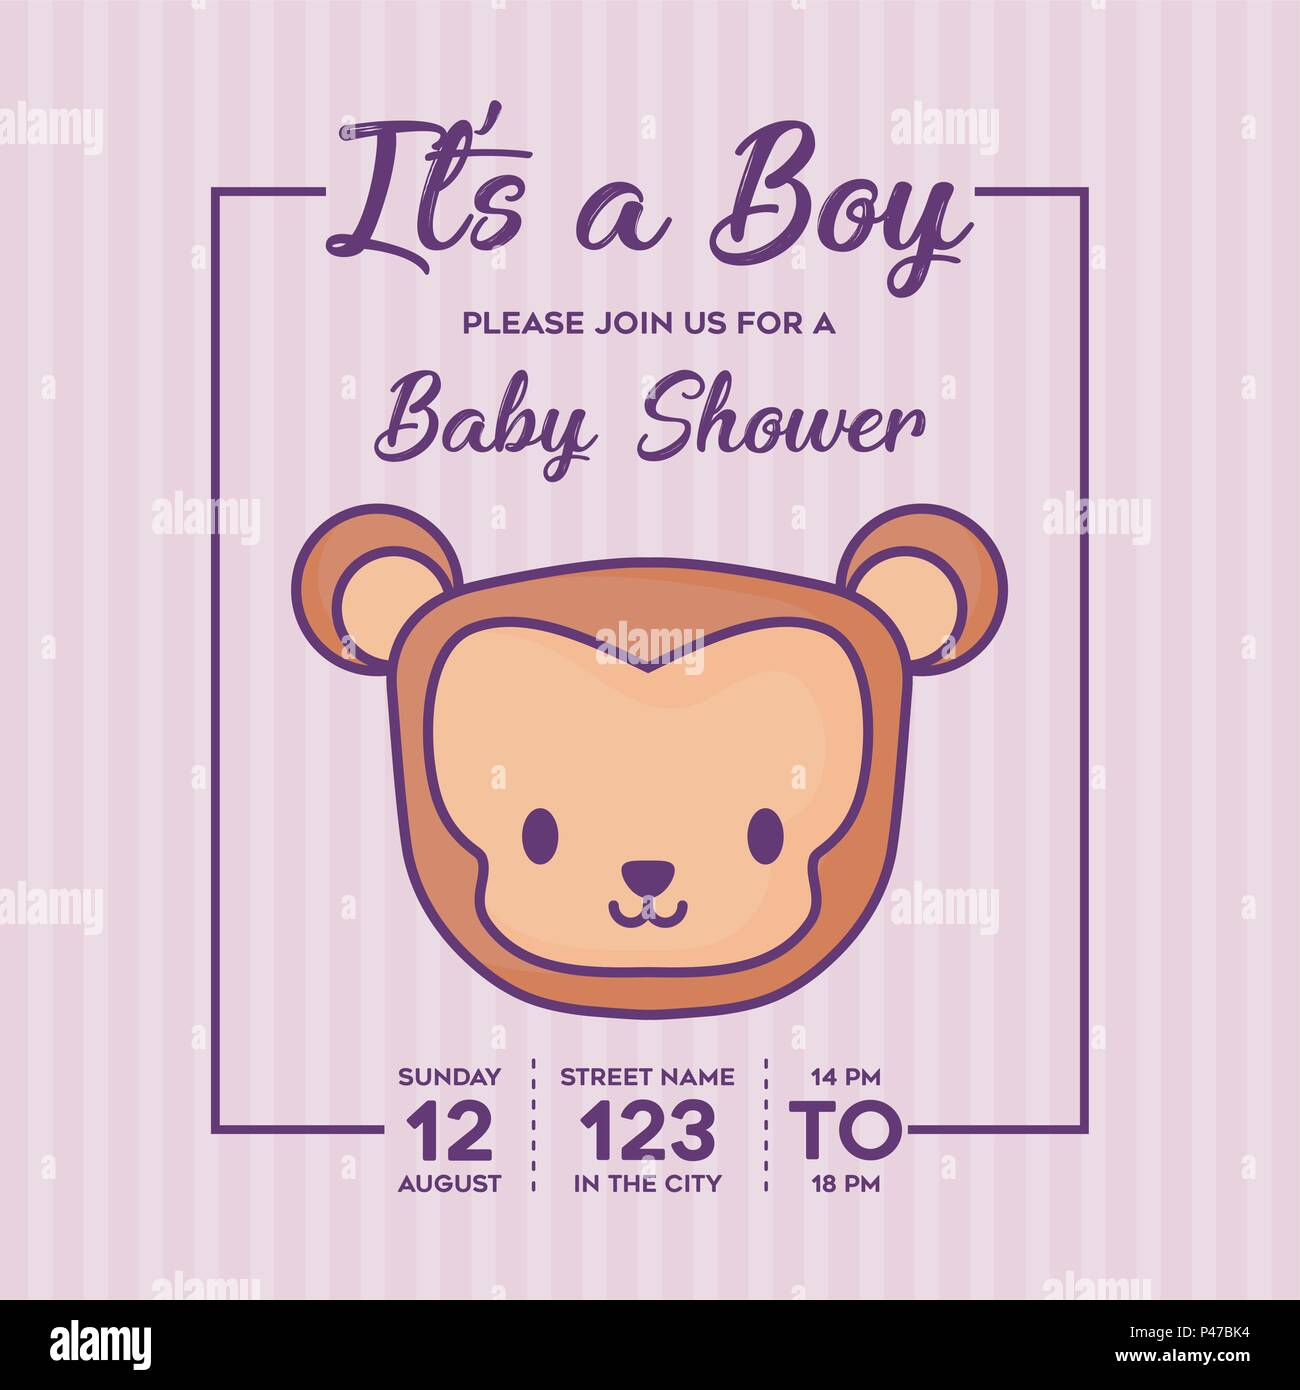 Its a boy Baby shower invitation with cute monkey icon over purple ...